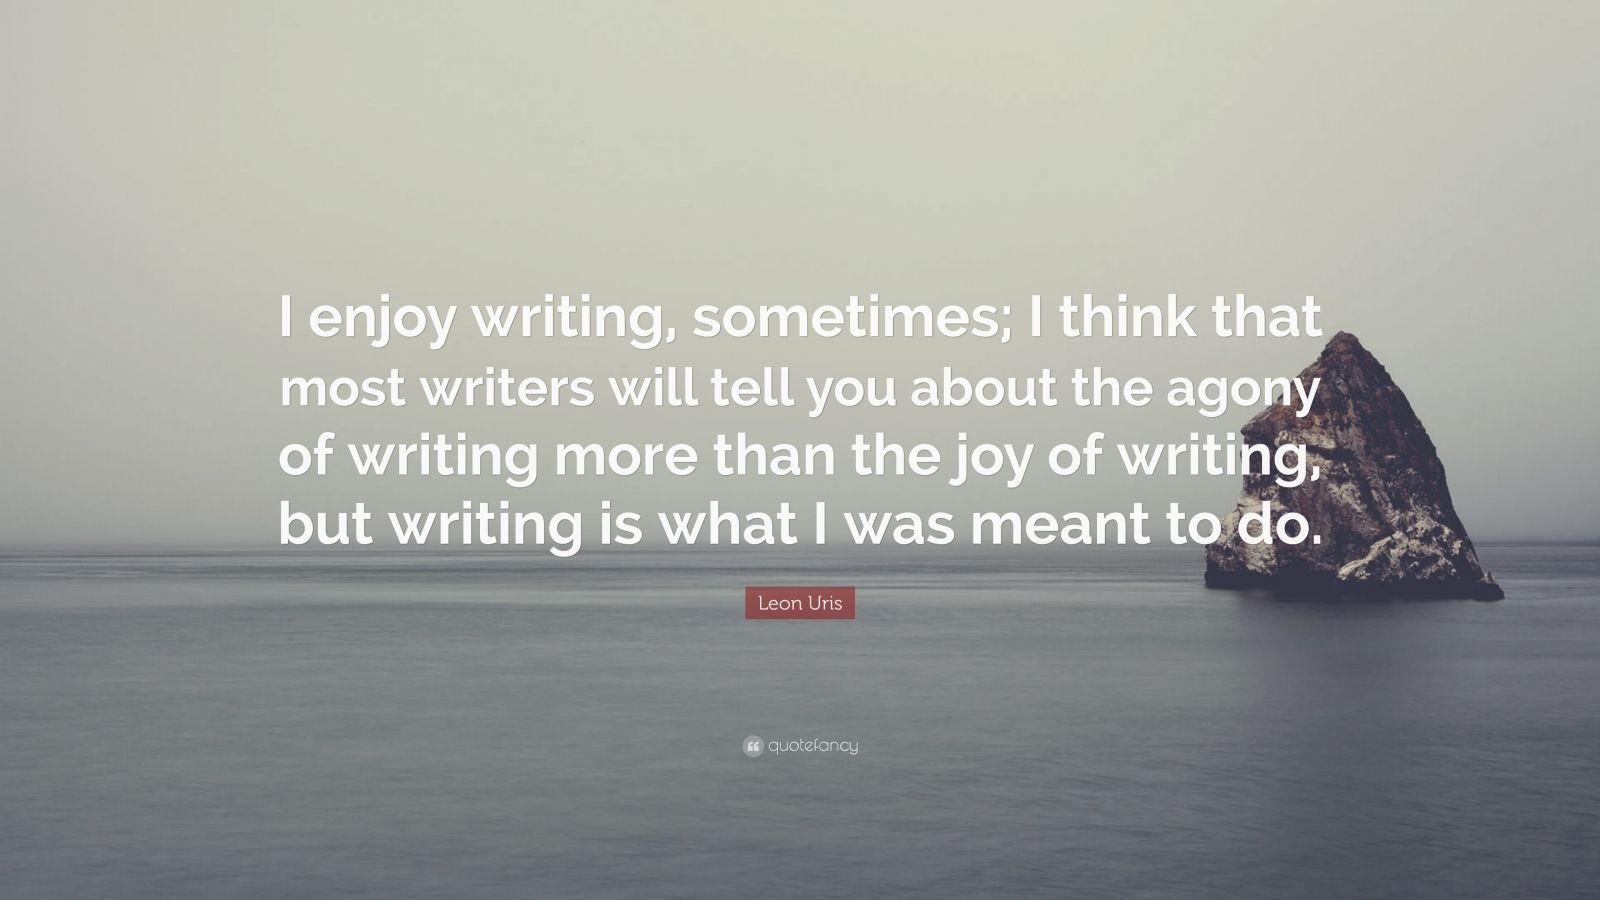 """Leon Uris Quote: """"I enjoy writing, sometimes; I think that most writers will tell you about the agony of writing more than the joy of writing, but writing is what I was meant to do."""""""